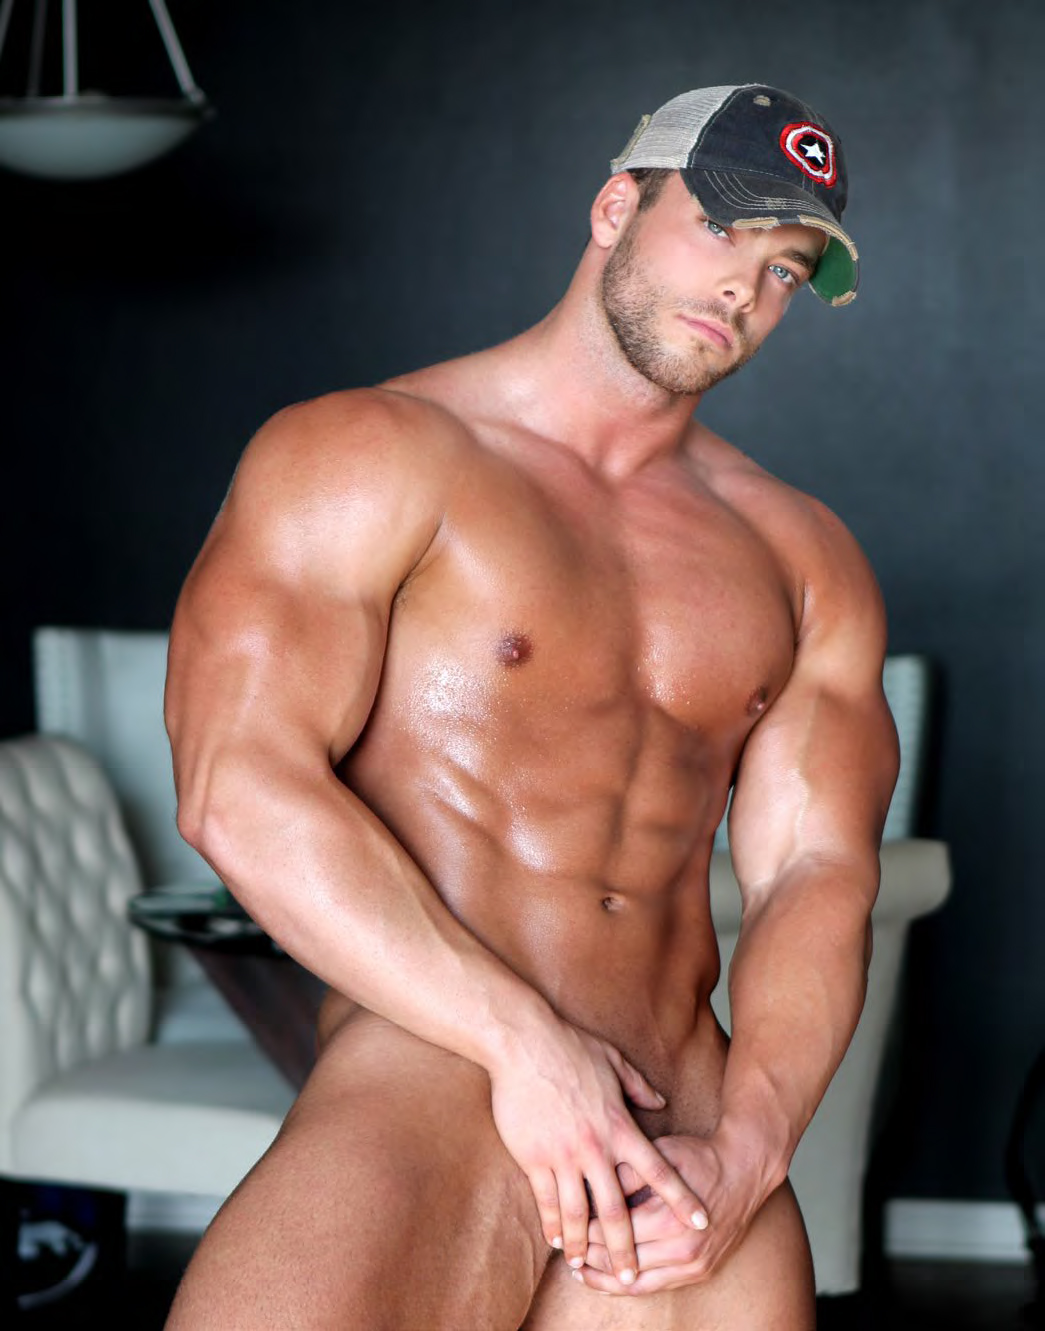 Guy muscle sex